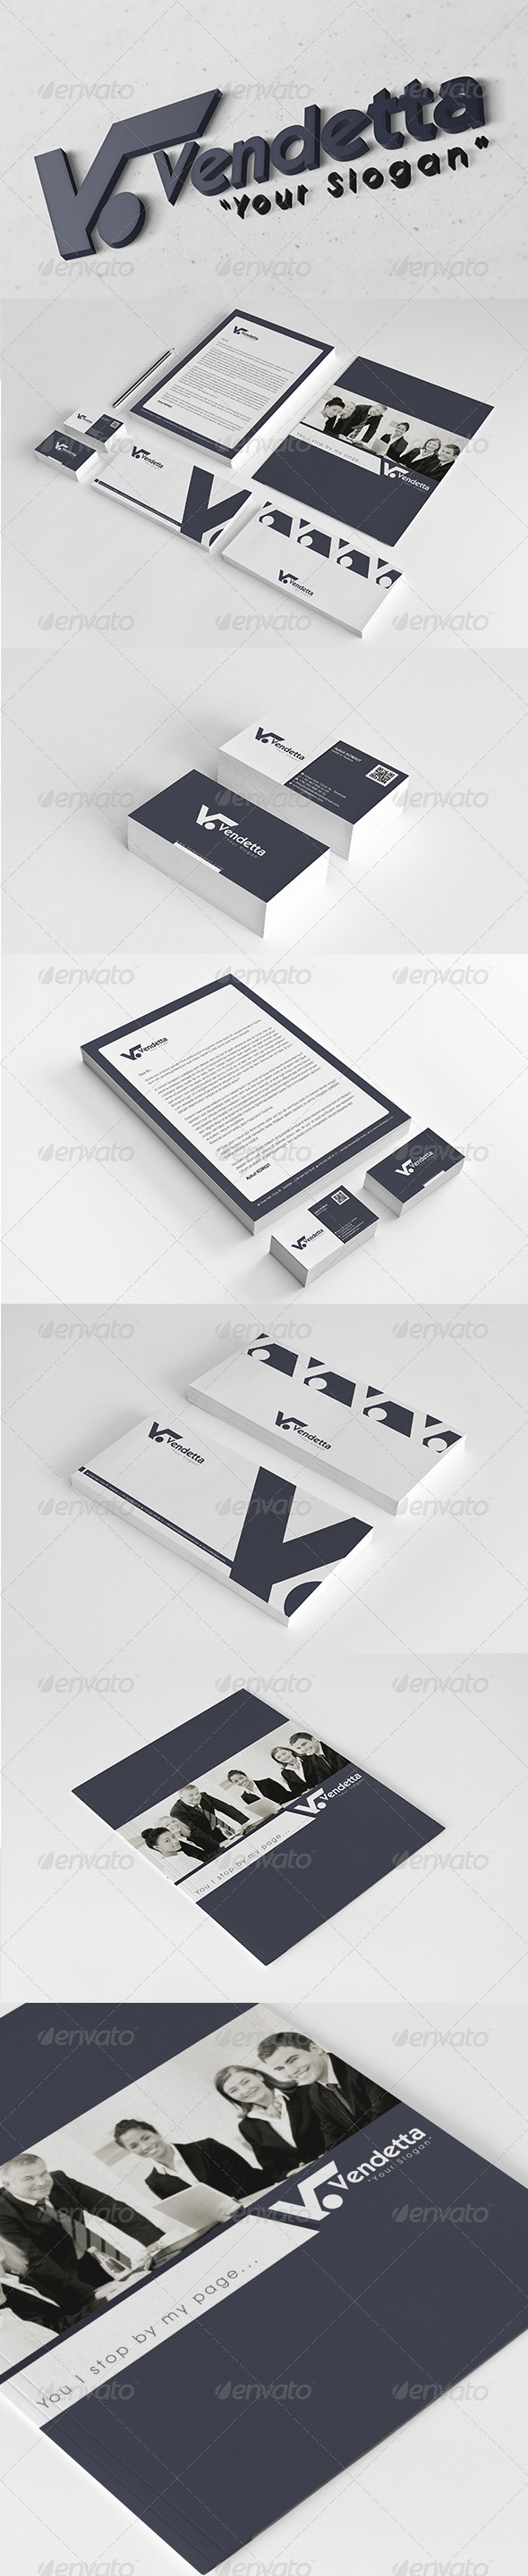 Vendetta Corporate Identity Package  - Stationery Print Templates